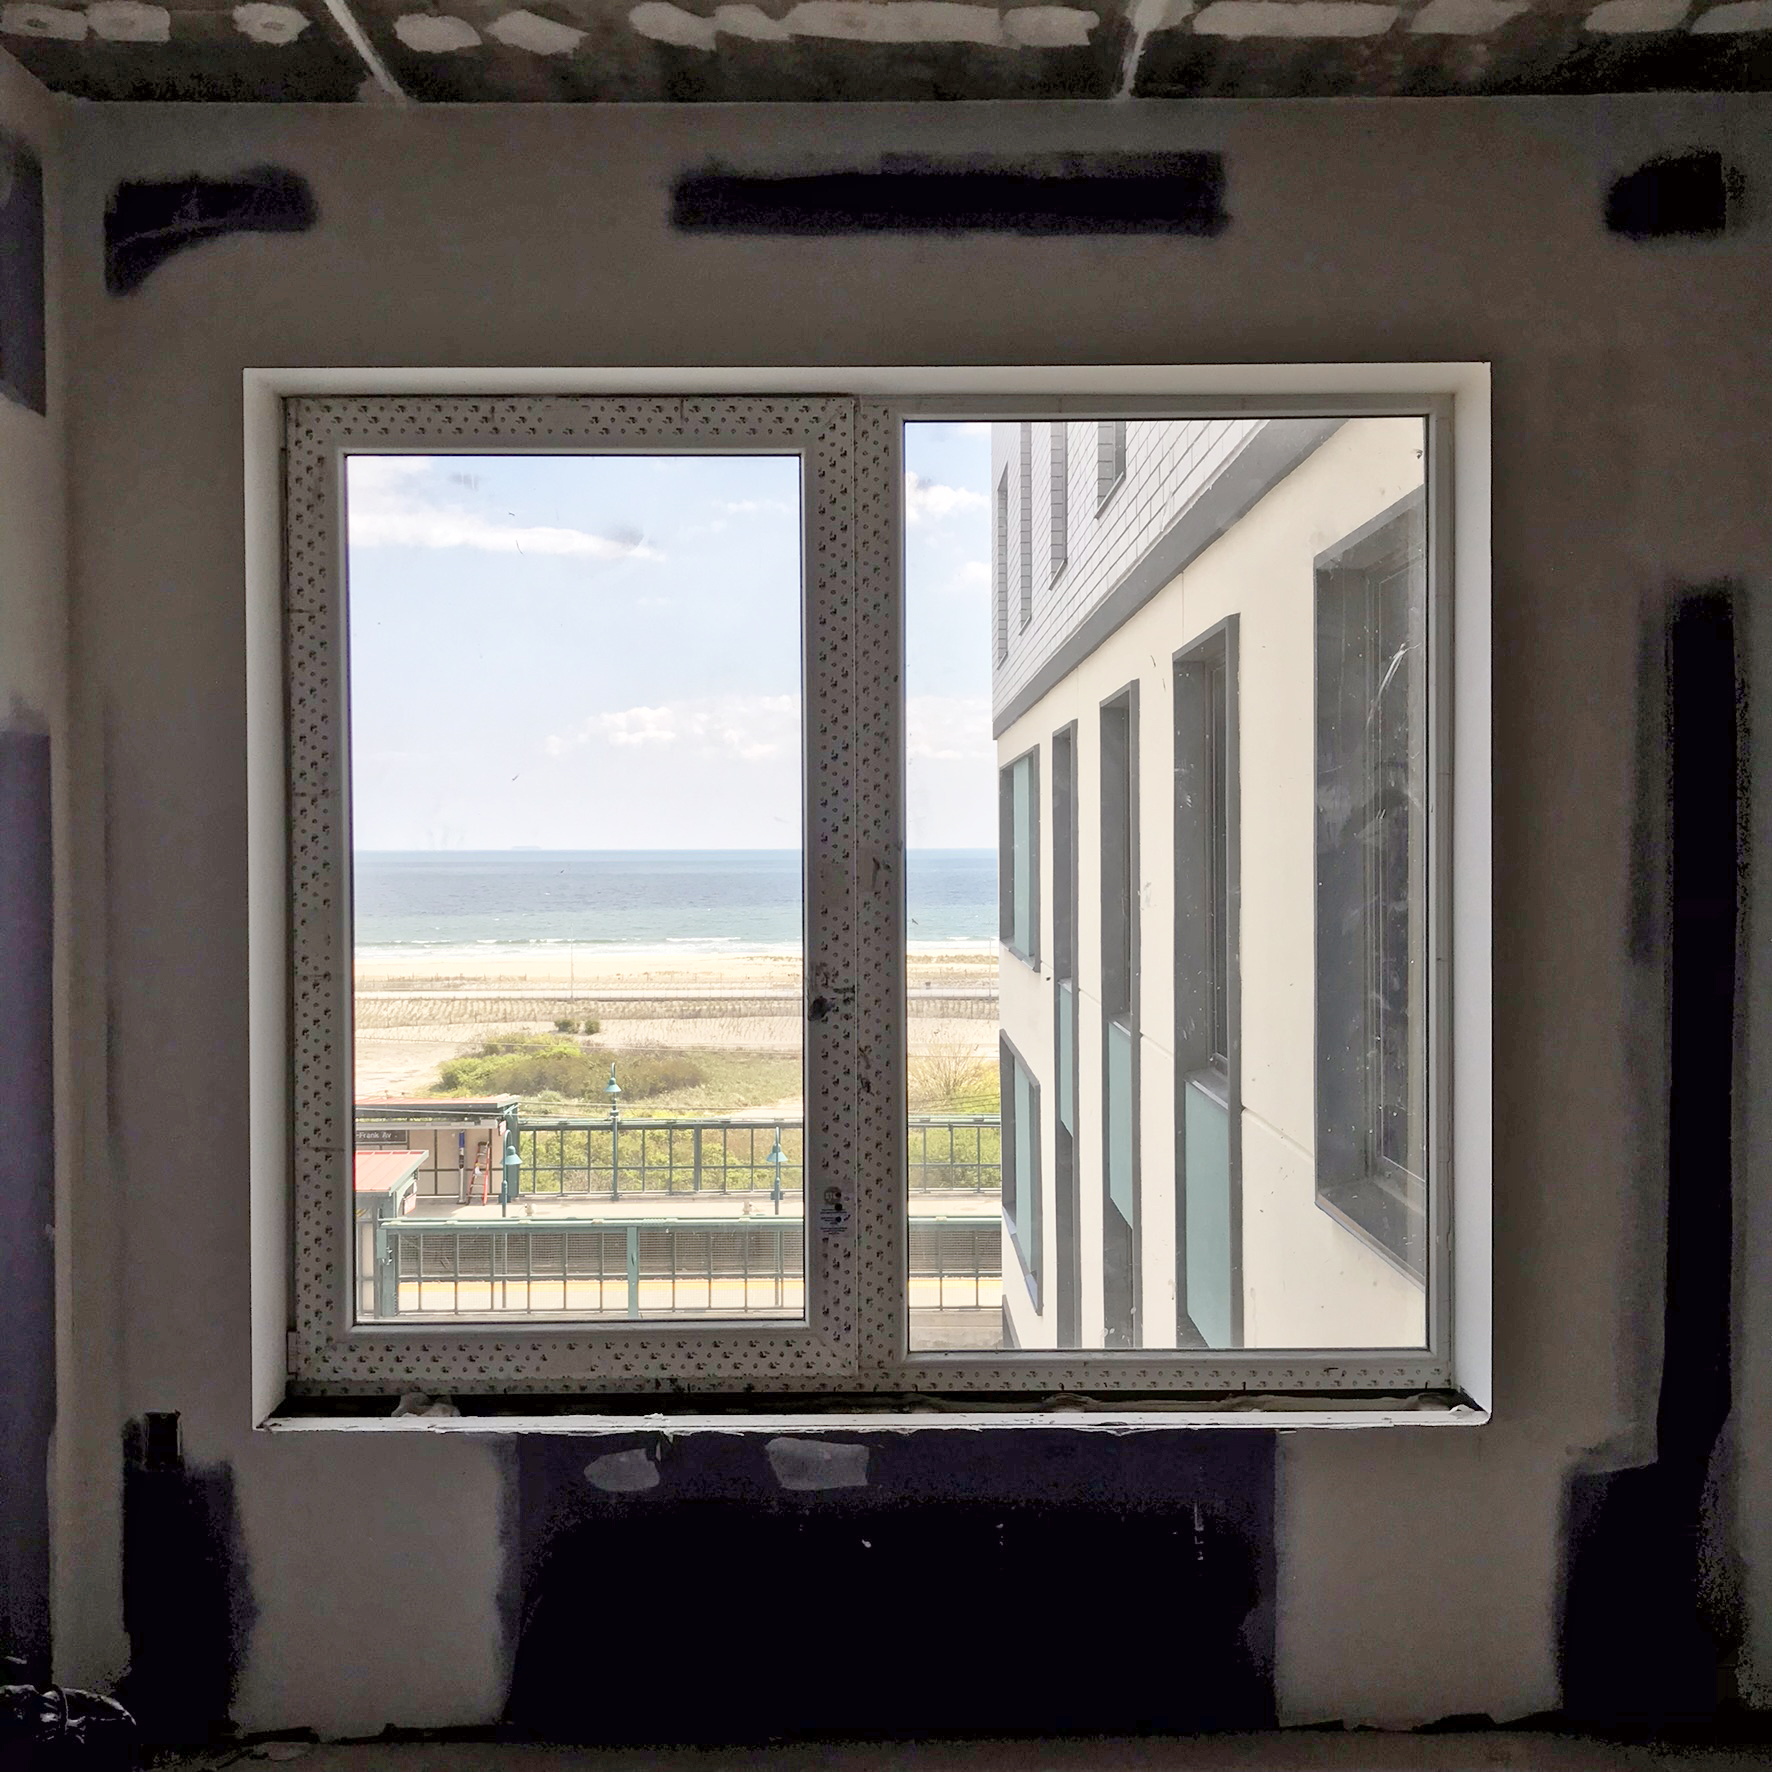 Beach Green Dunes with INTUS windows